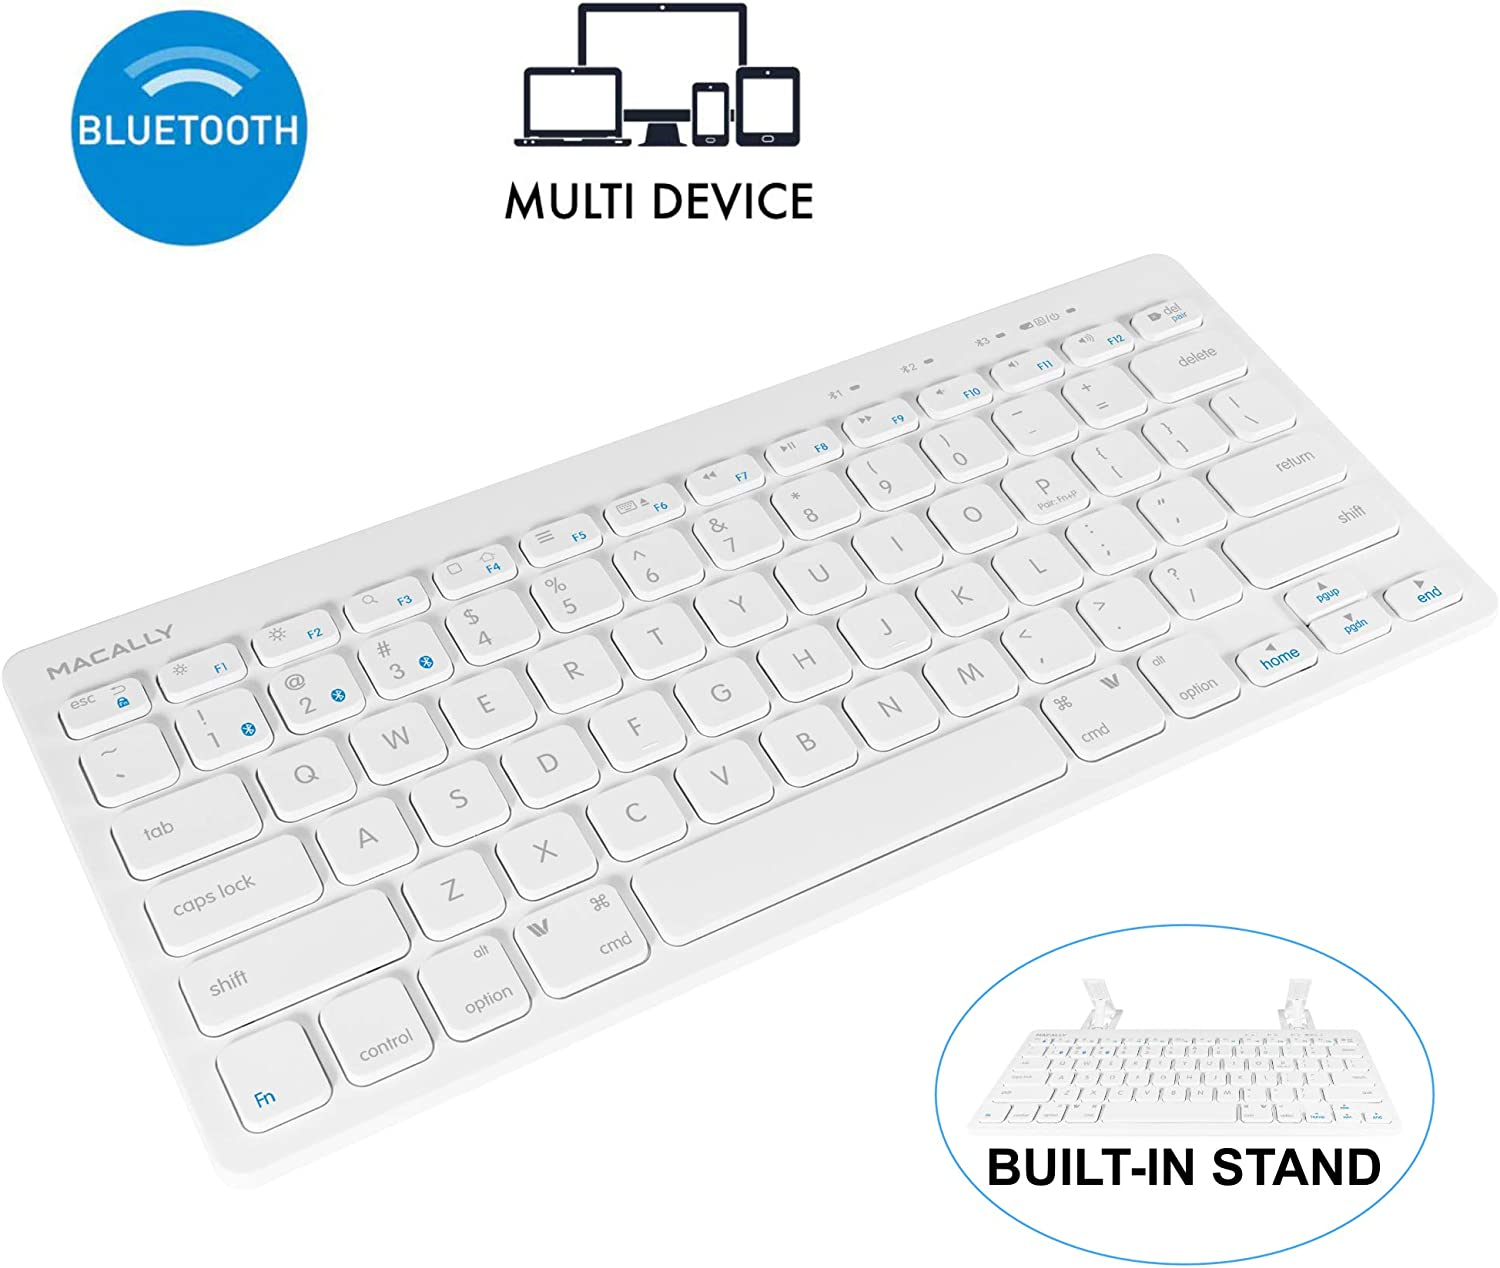 Macally Compact Bluetooth Keyboard for Mac, iPad, iPhone, PC, & Android - Built in Tablet/Phone Stand & Multi Device Sync - Ultra Portable Mac Wireless Keyboard - Perfect for Travel or at Home